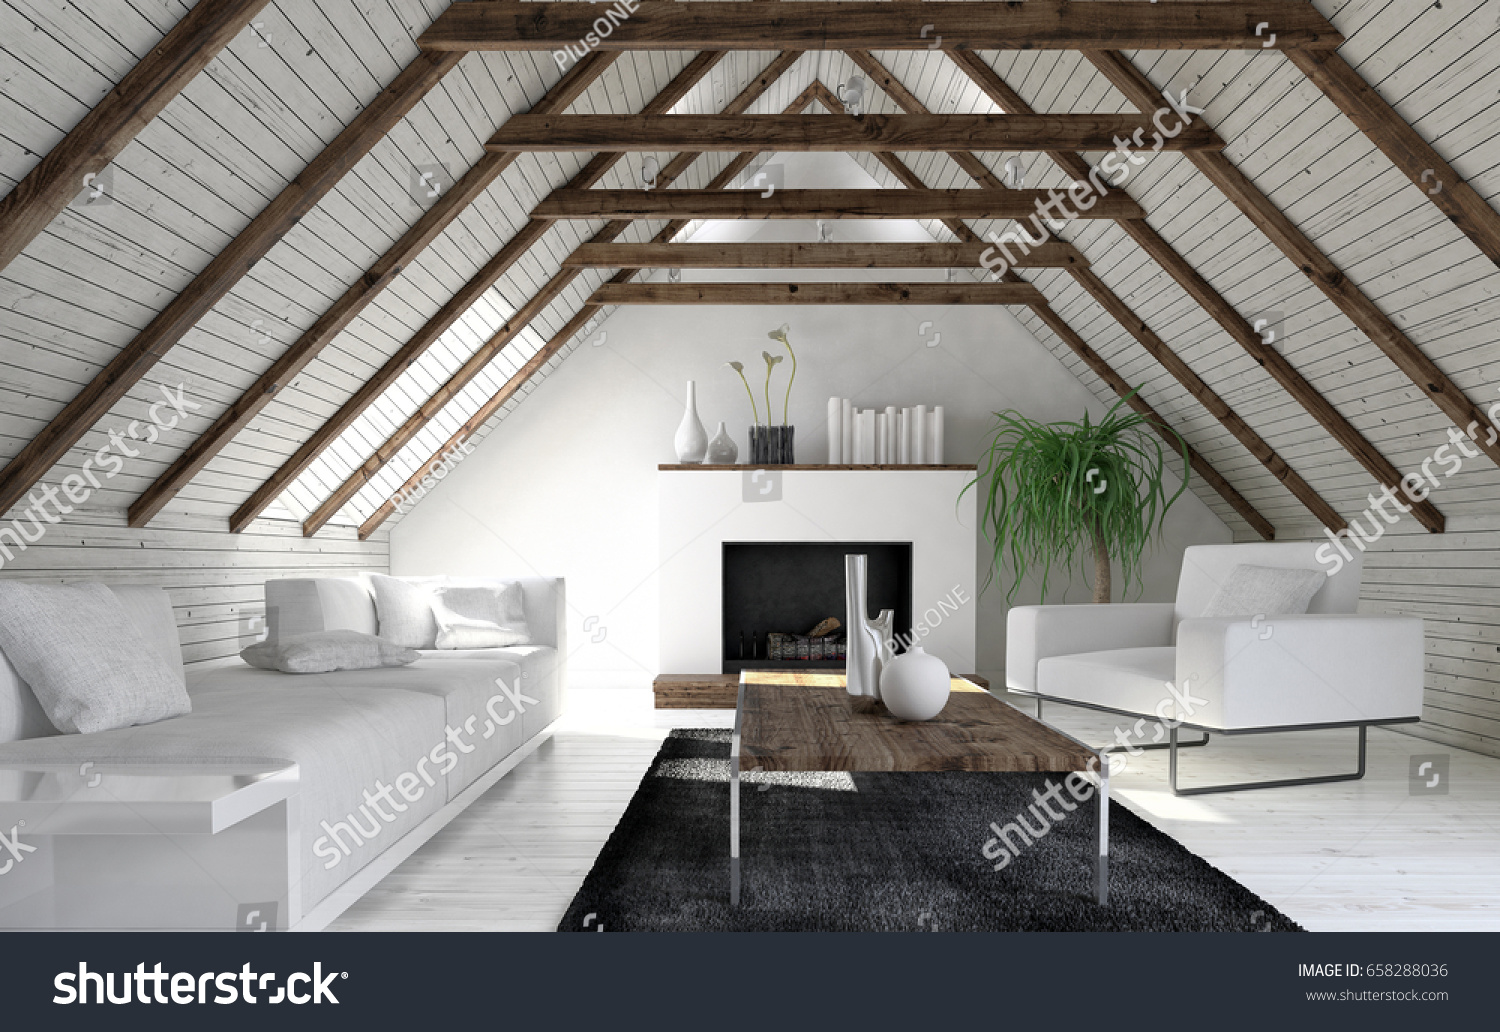 Attic living room in minimalist interior design with white sofa fireplace and coffee table